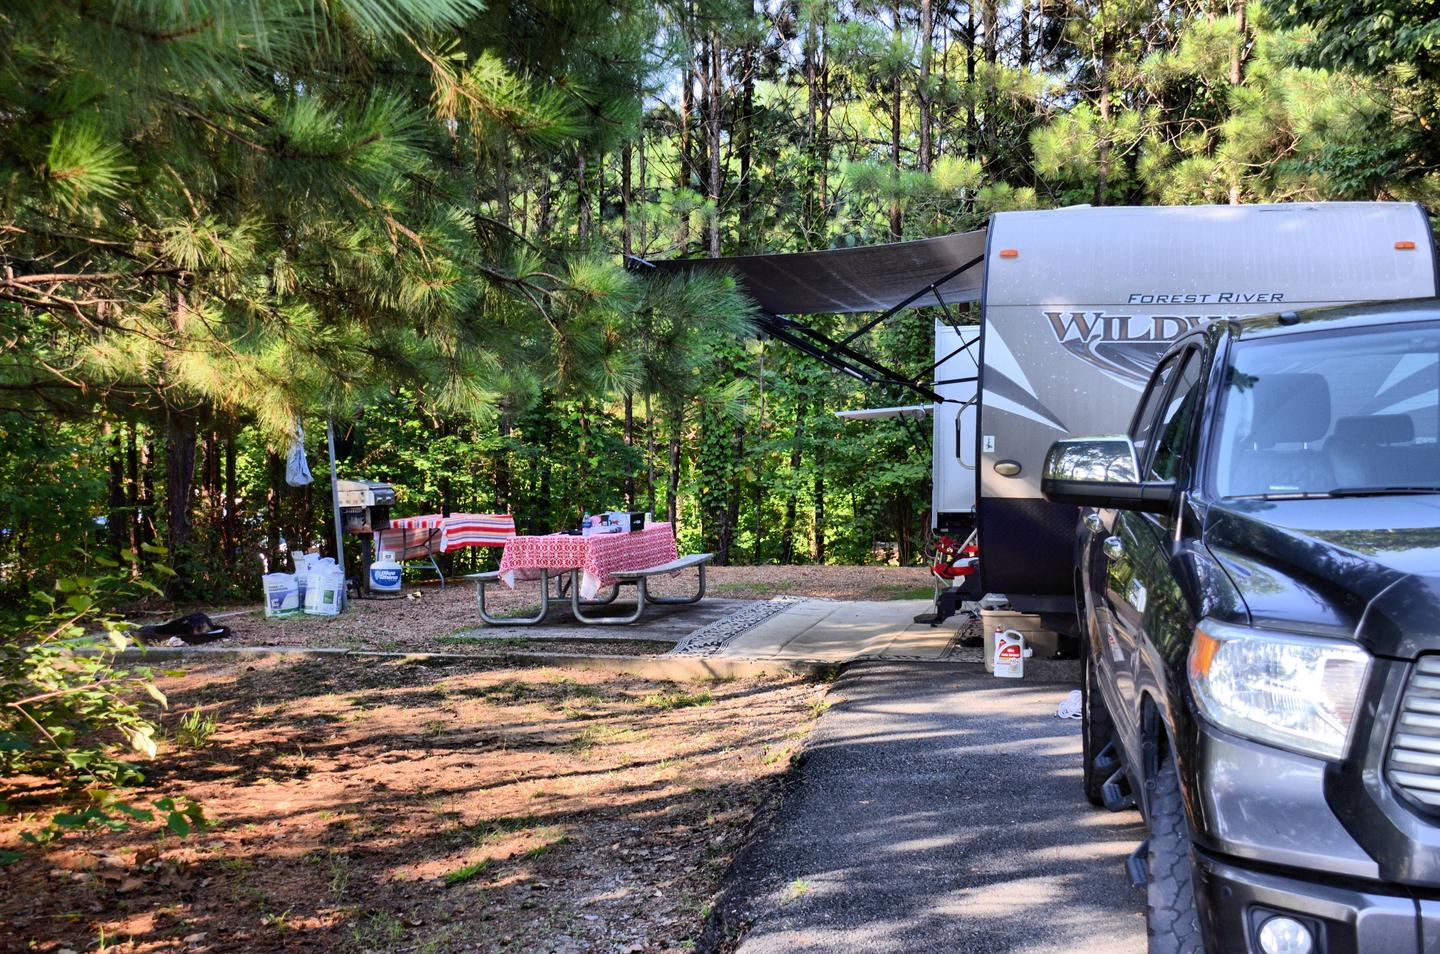 Awning-side clearance, campsite view.Payne Campground, campsite 002.